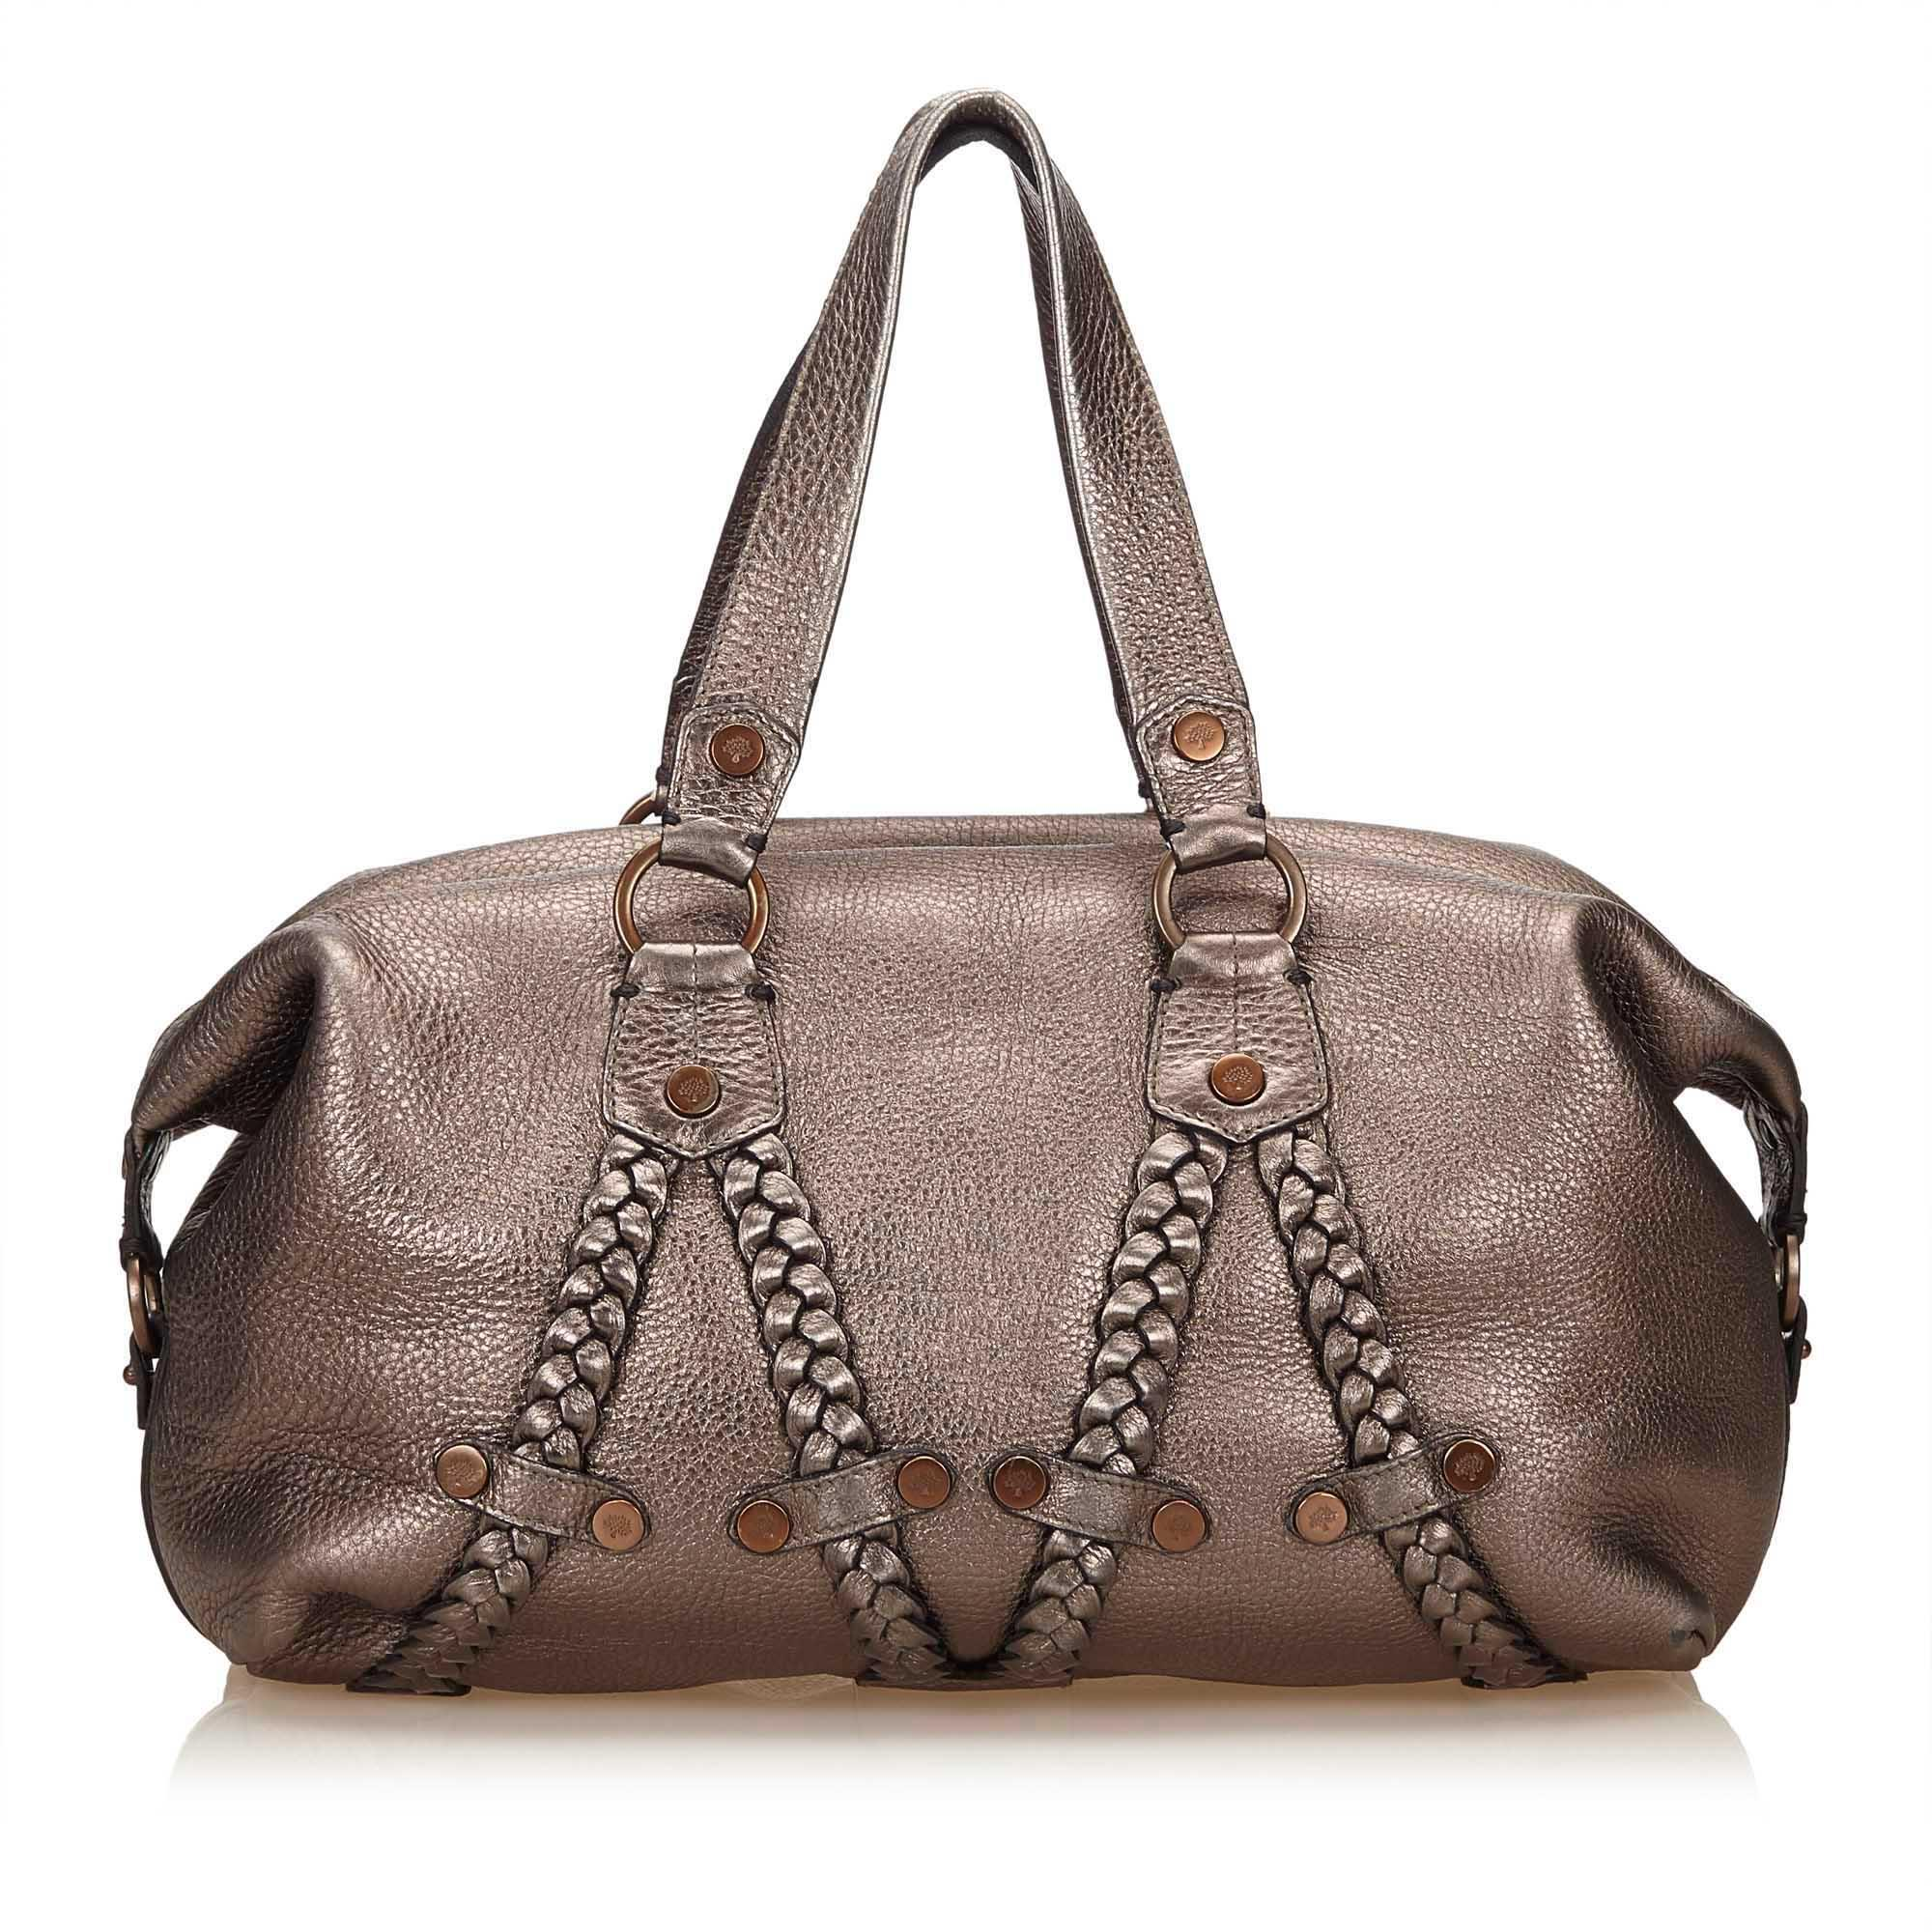 195d9d2785f3 ... mulberry 7bmbhb005 baguette 182a1 be4a8 ebay mulberry 7bmbhb005  baguette 182a1 be4a8  canada mulberry bayswater in hedgehog maxi grain  metallic bronze ...